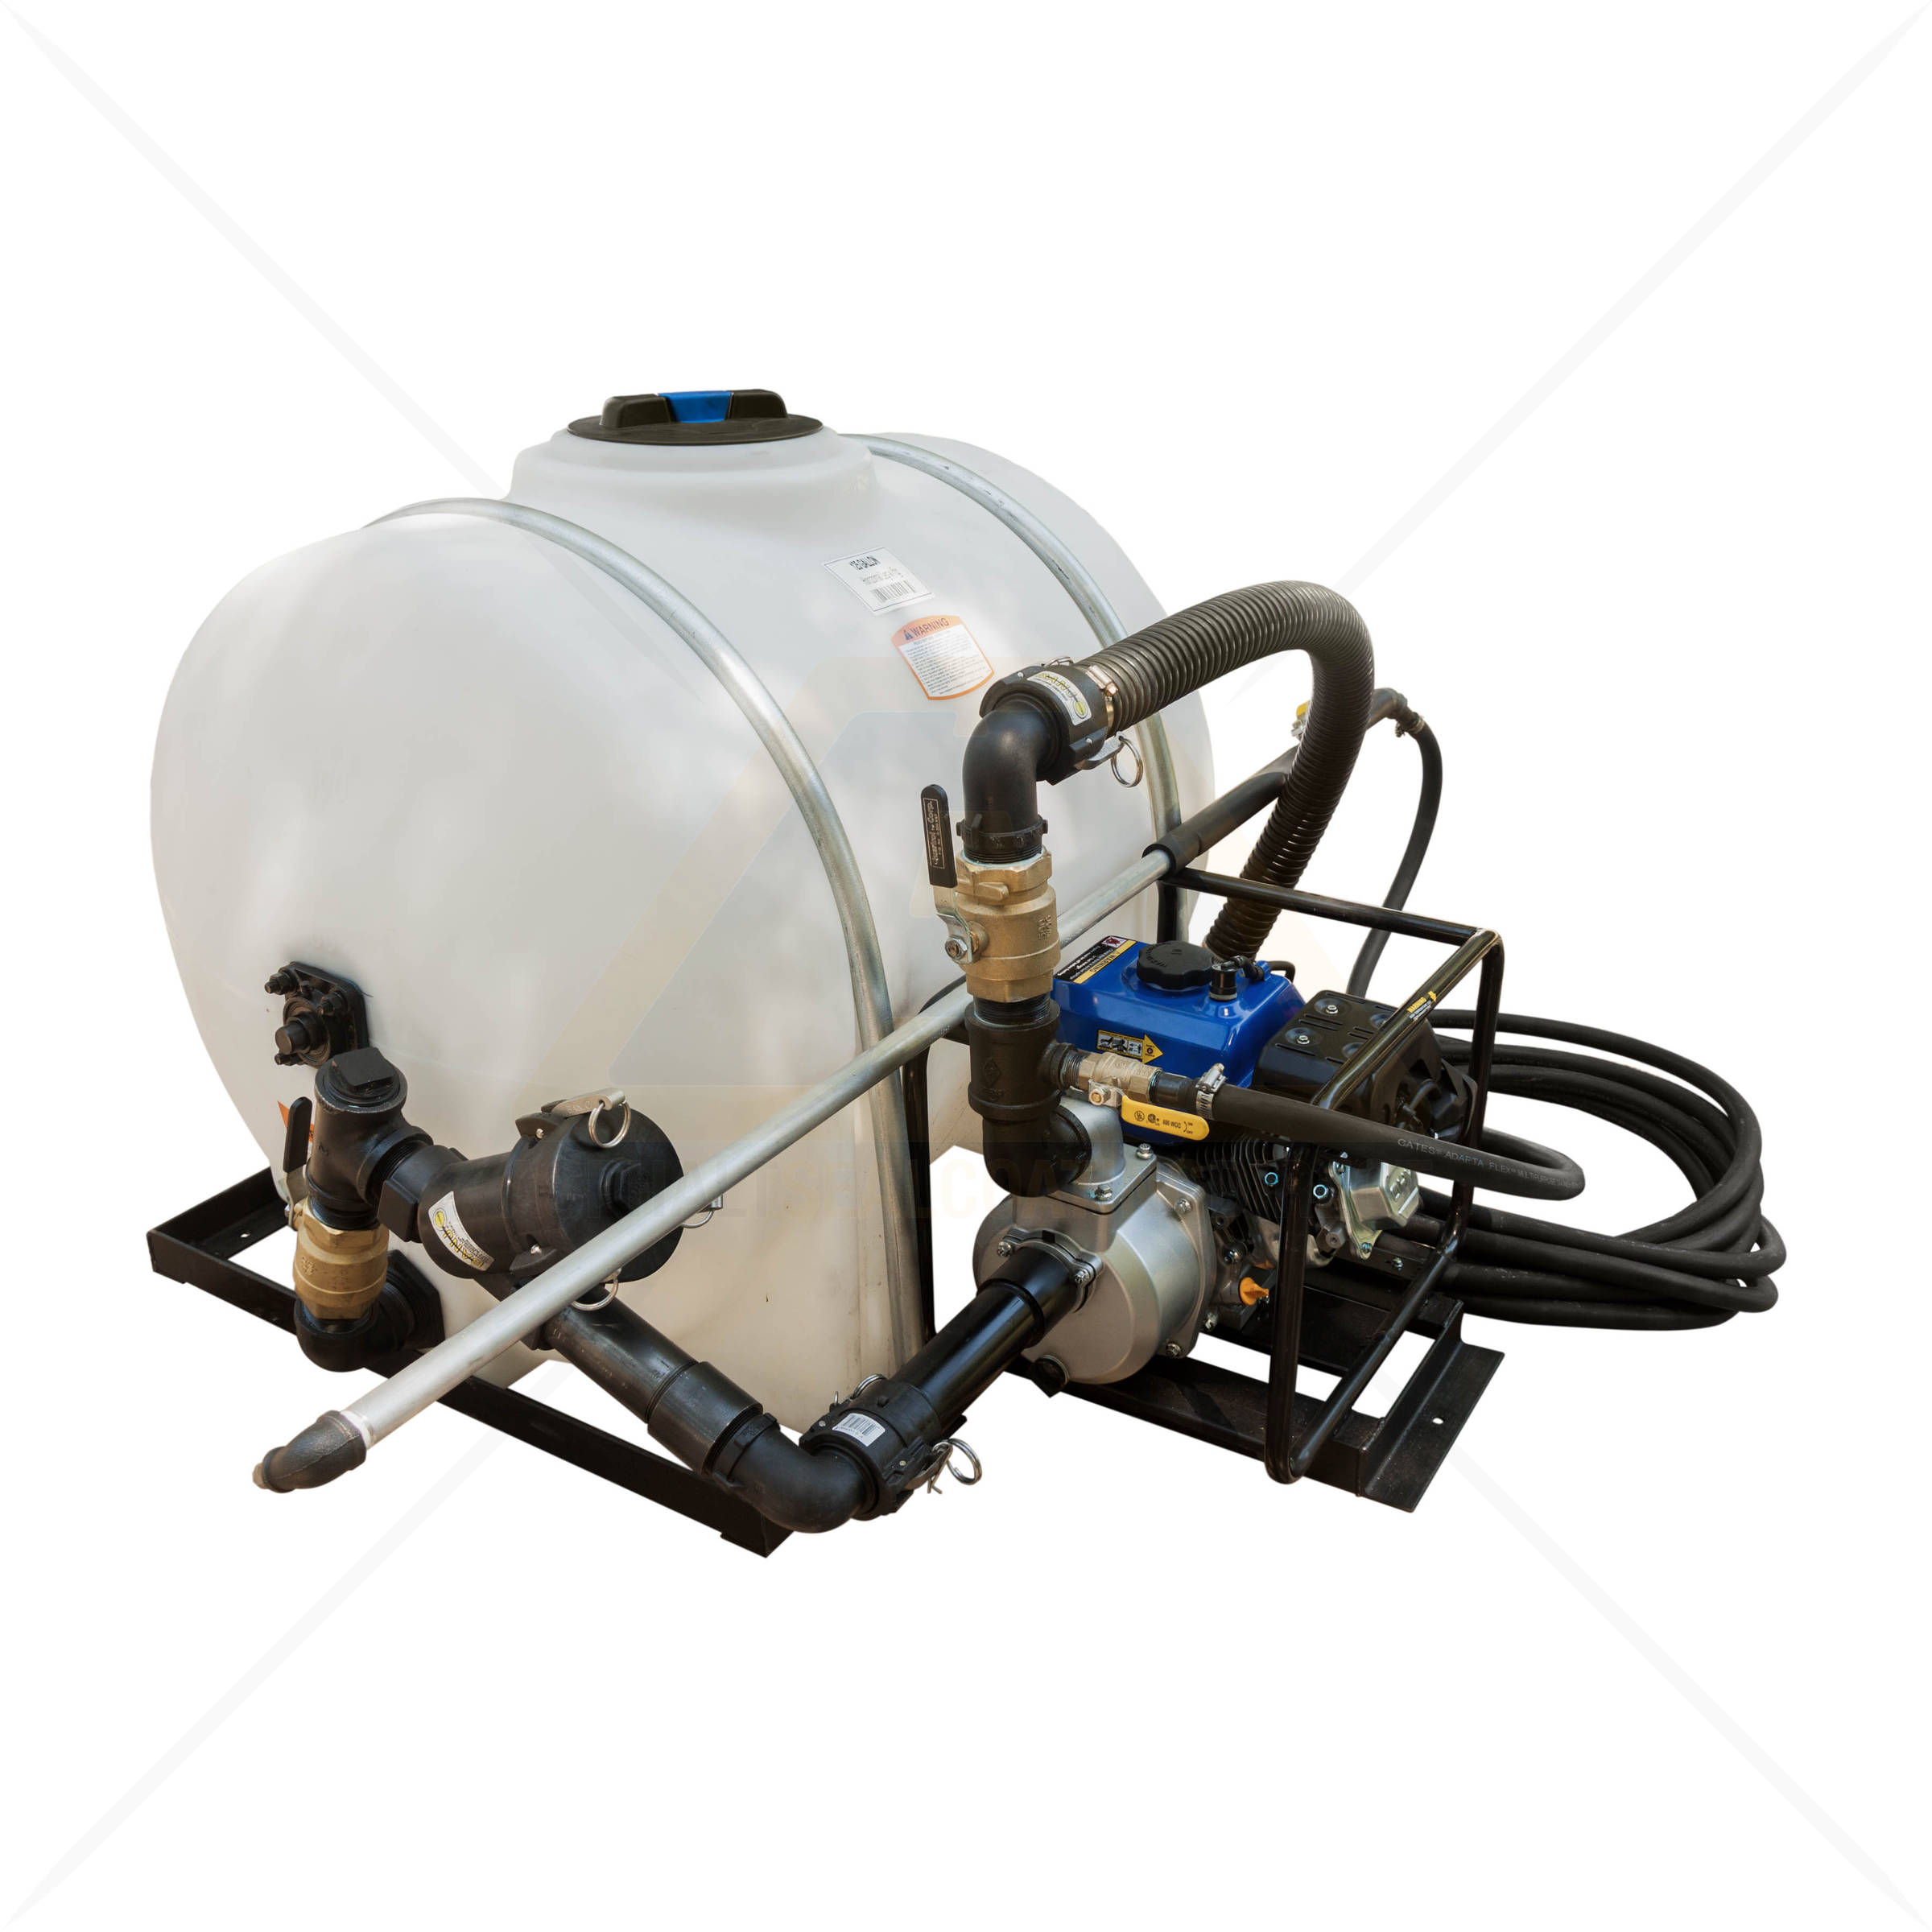 Driveway Sealcoat Machine With 125 Gallon Poly Tank Is